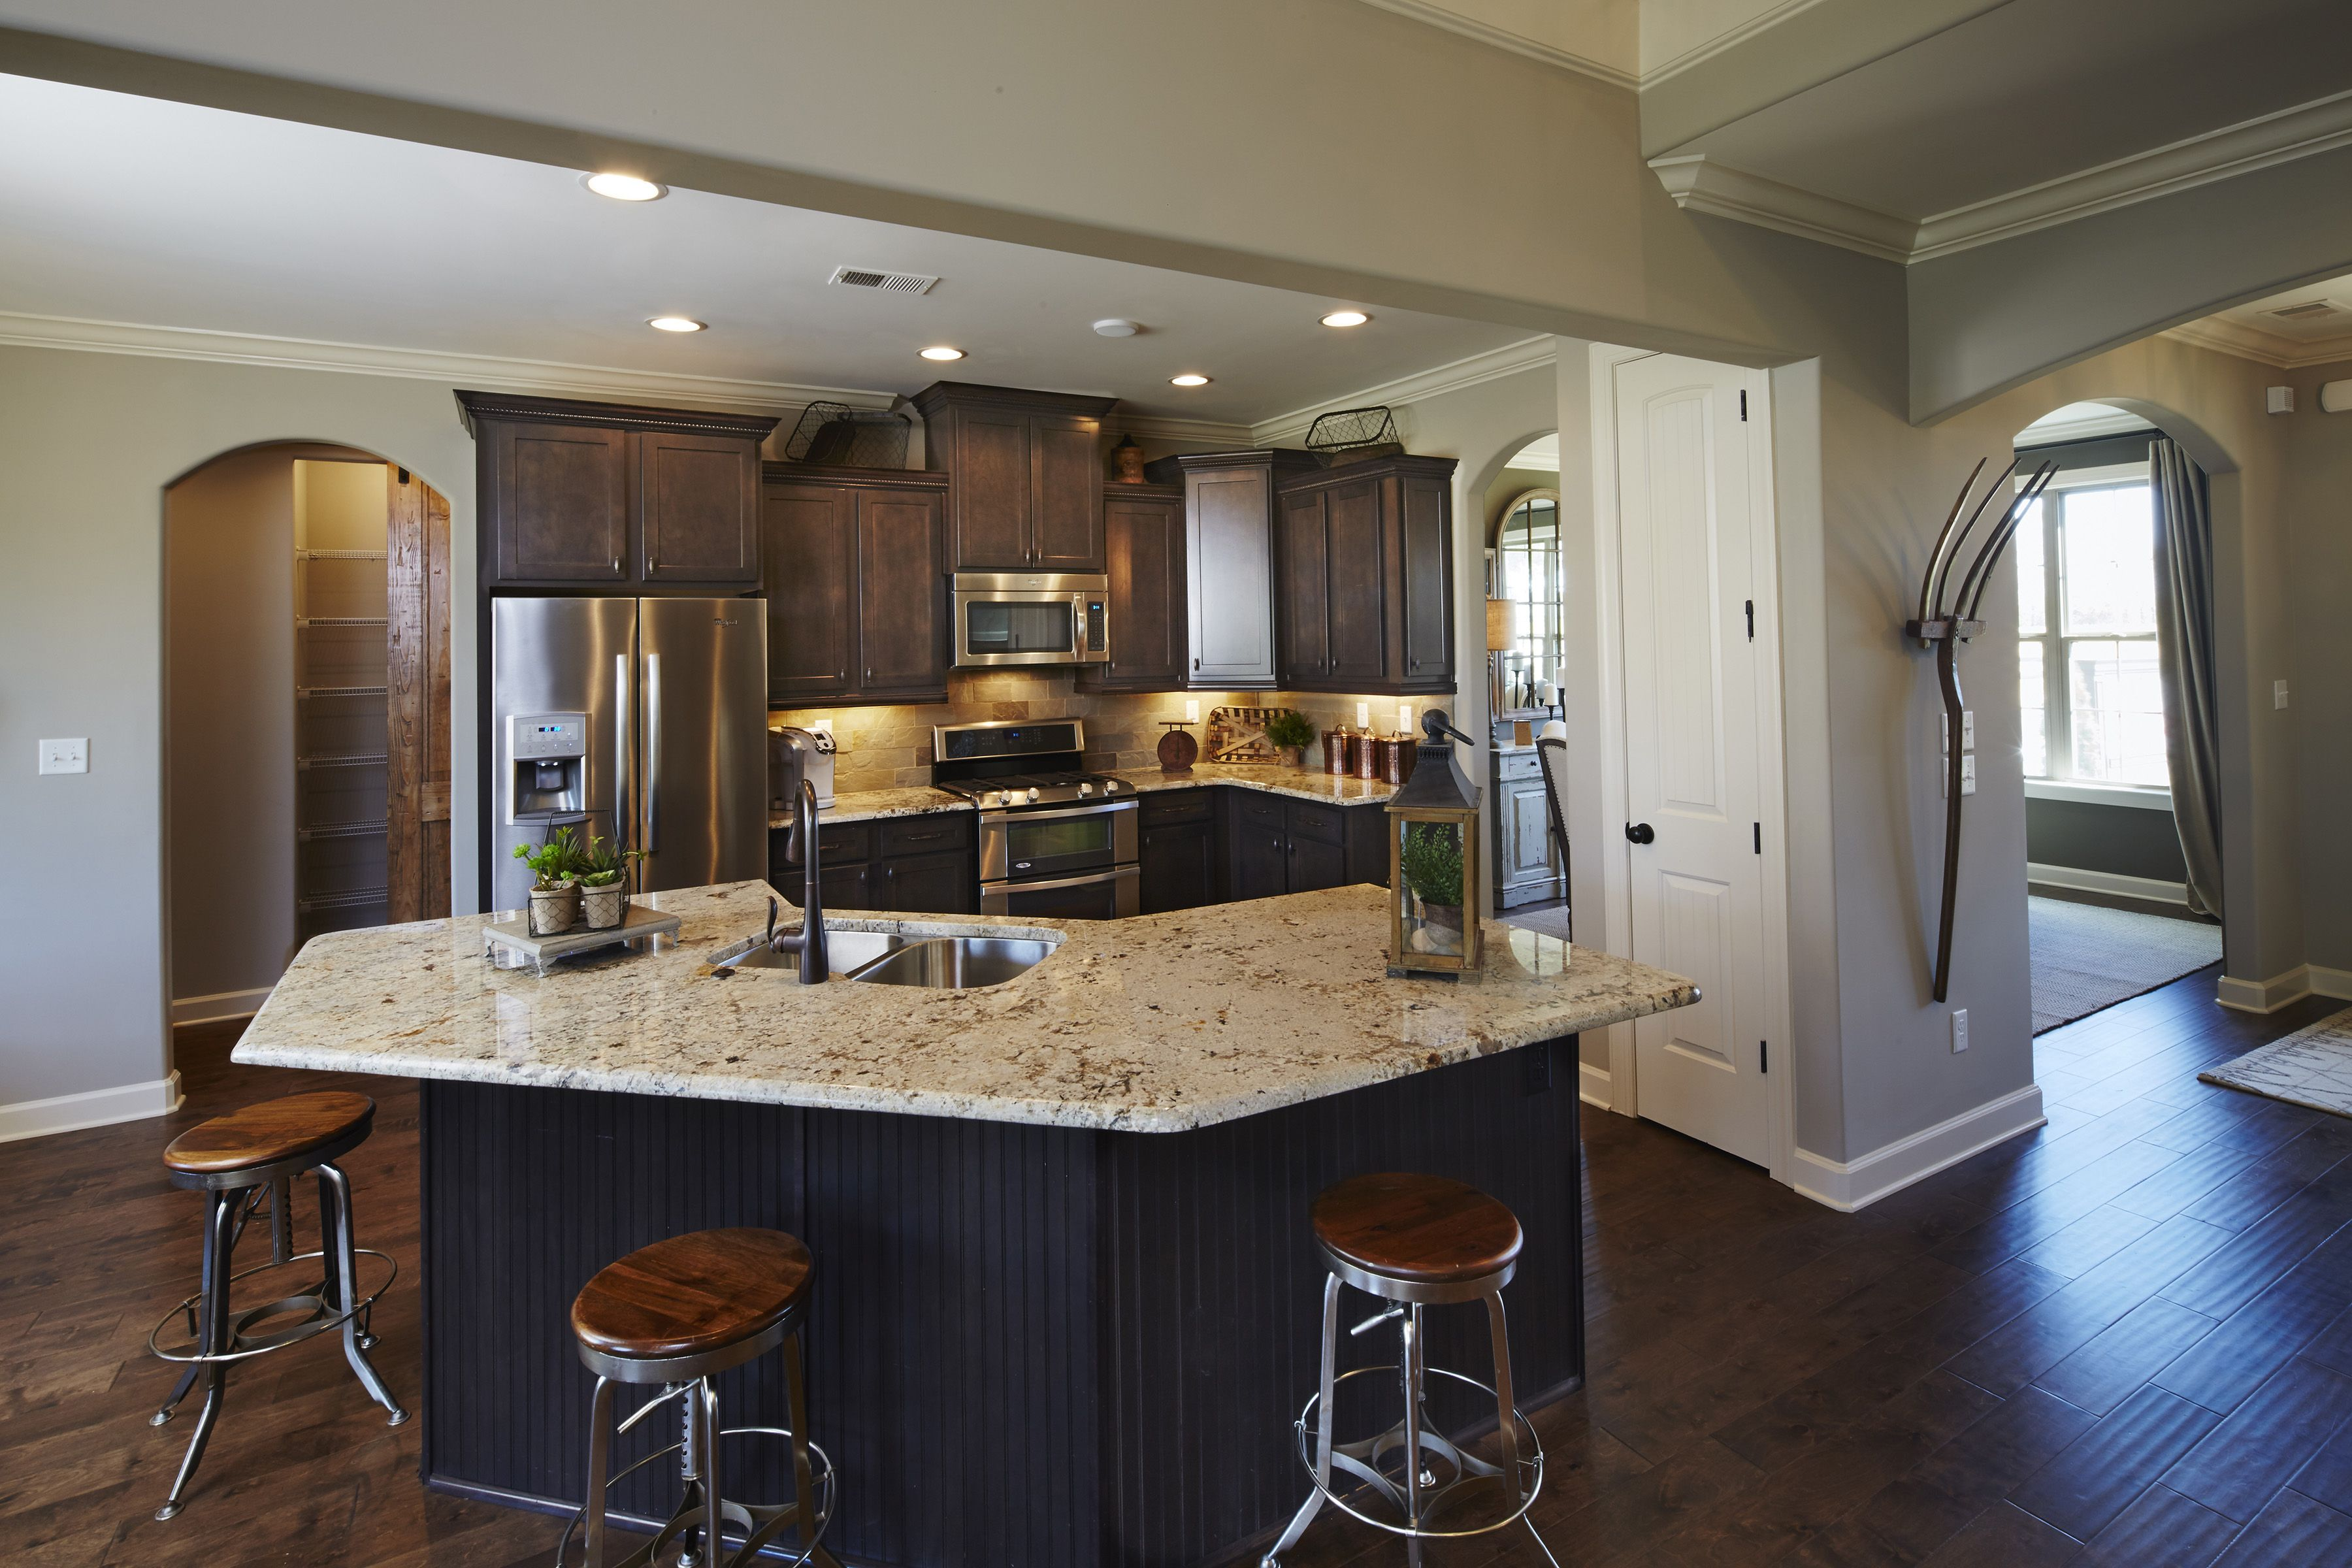 Regency Homebuilders Open Concept Living Large Kitchen Dark Cabinets Staggered Cabinets Farm Sink Flus Building A House Regency House Staggered Cabinets